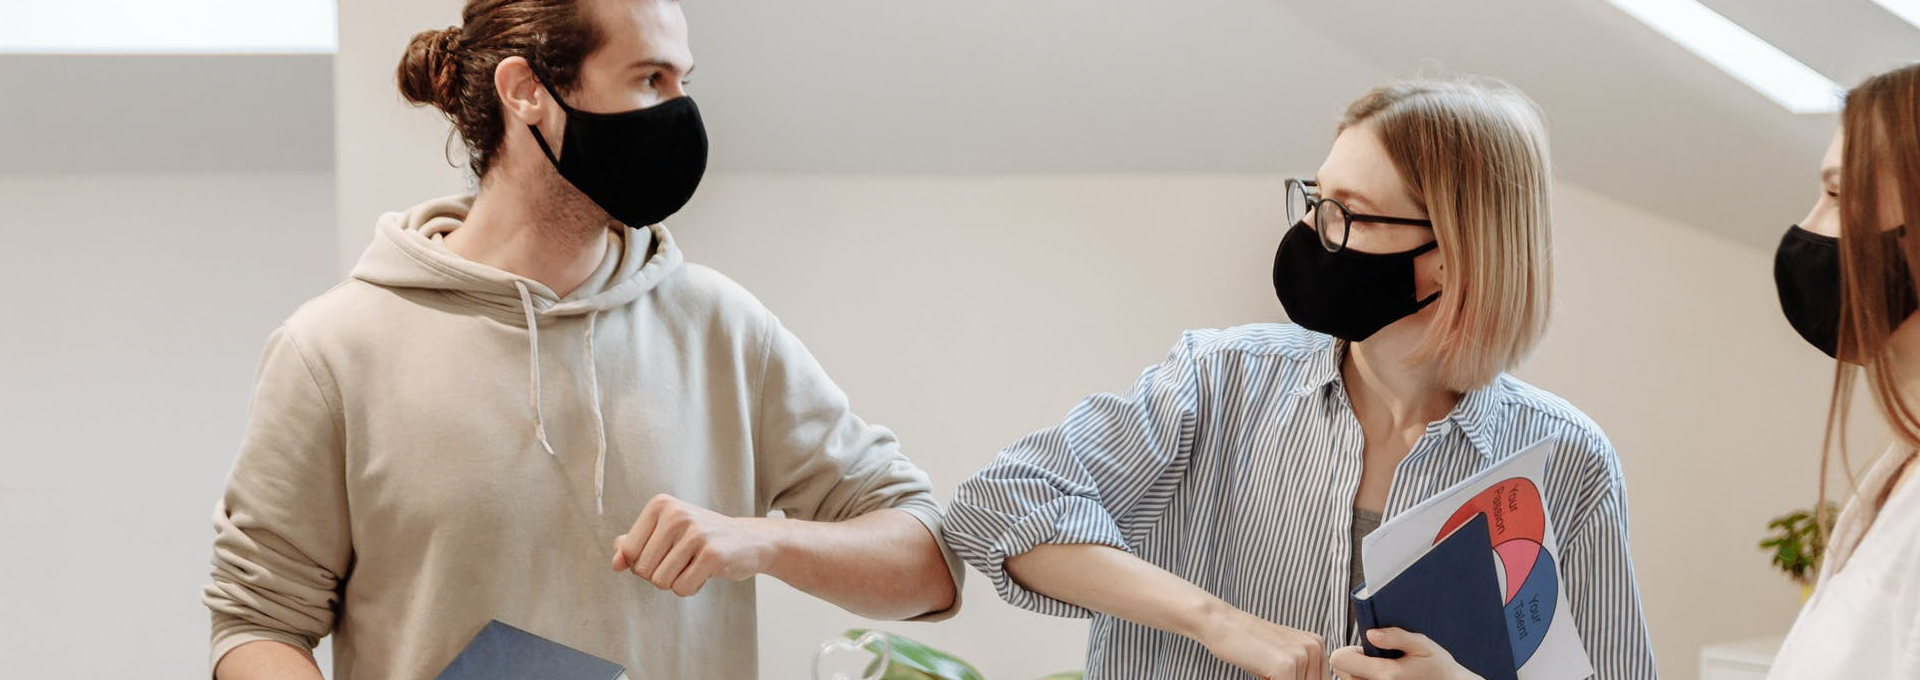 Two employees bumping elbows in the workplace